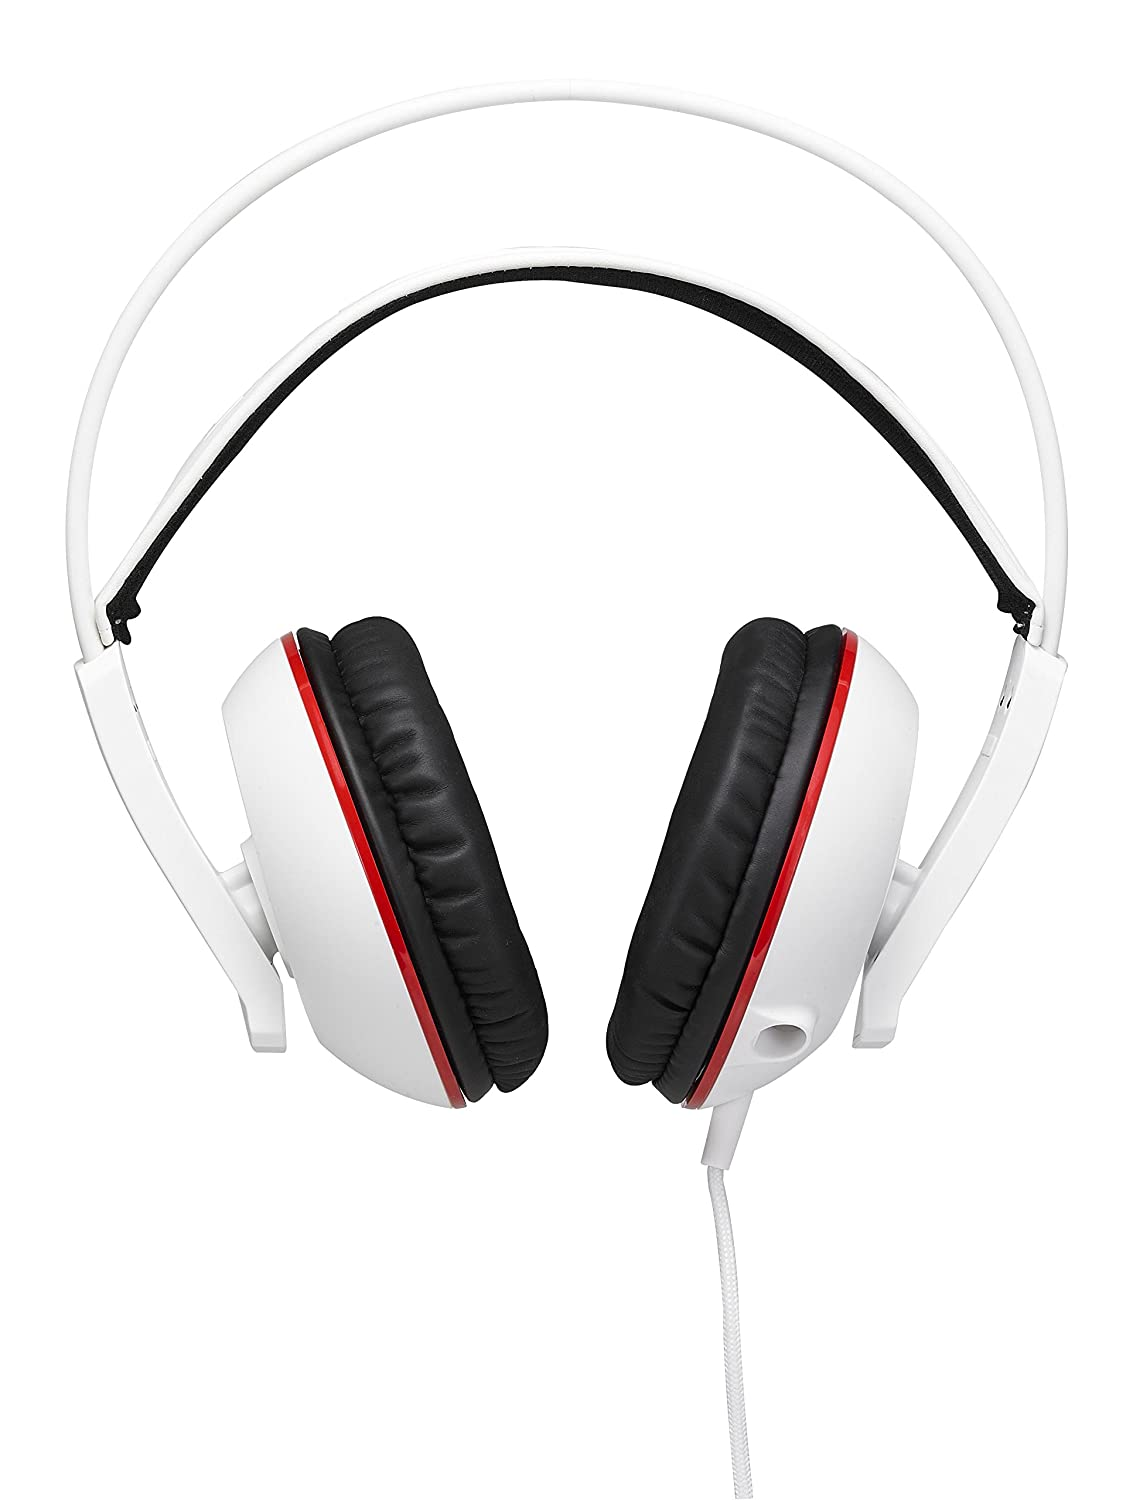 Amazon.com: ASUS Gaming Headset Headphone (Cerberus Arctic White): Electronics